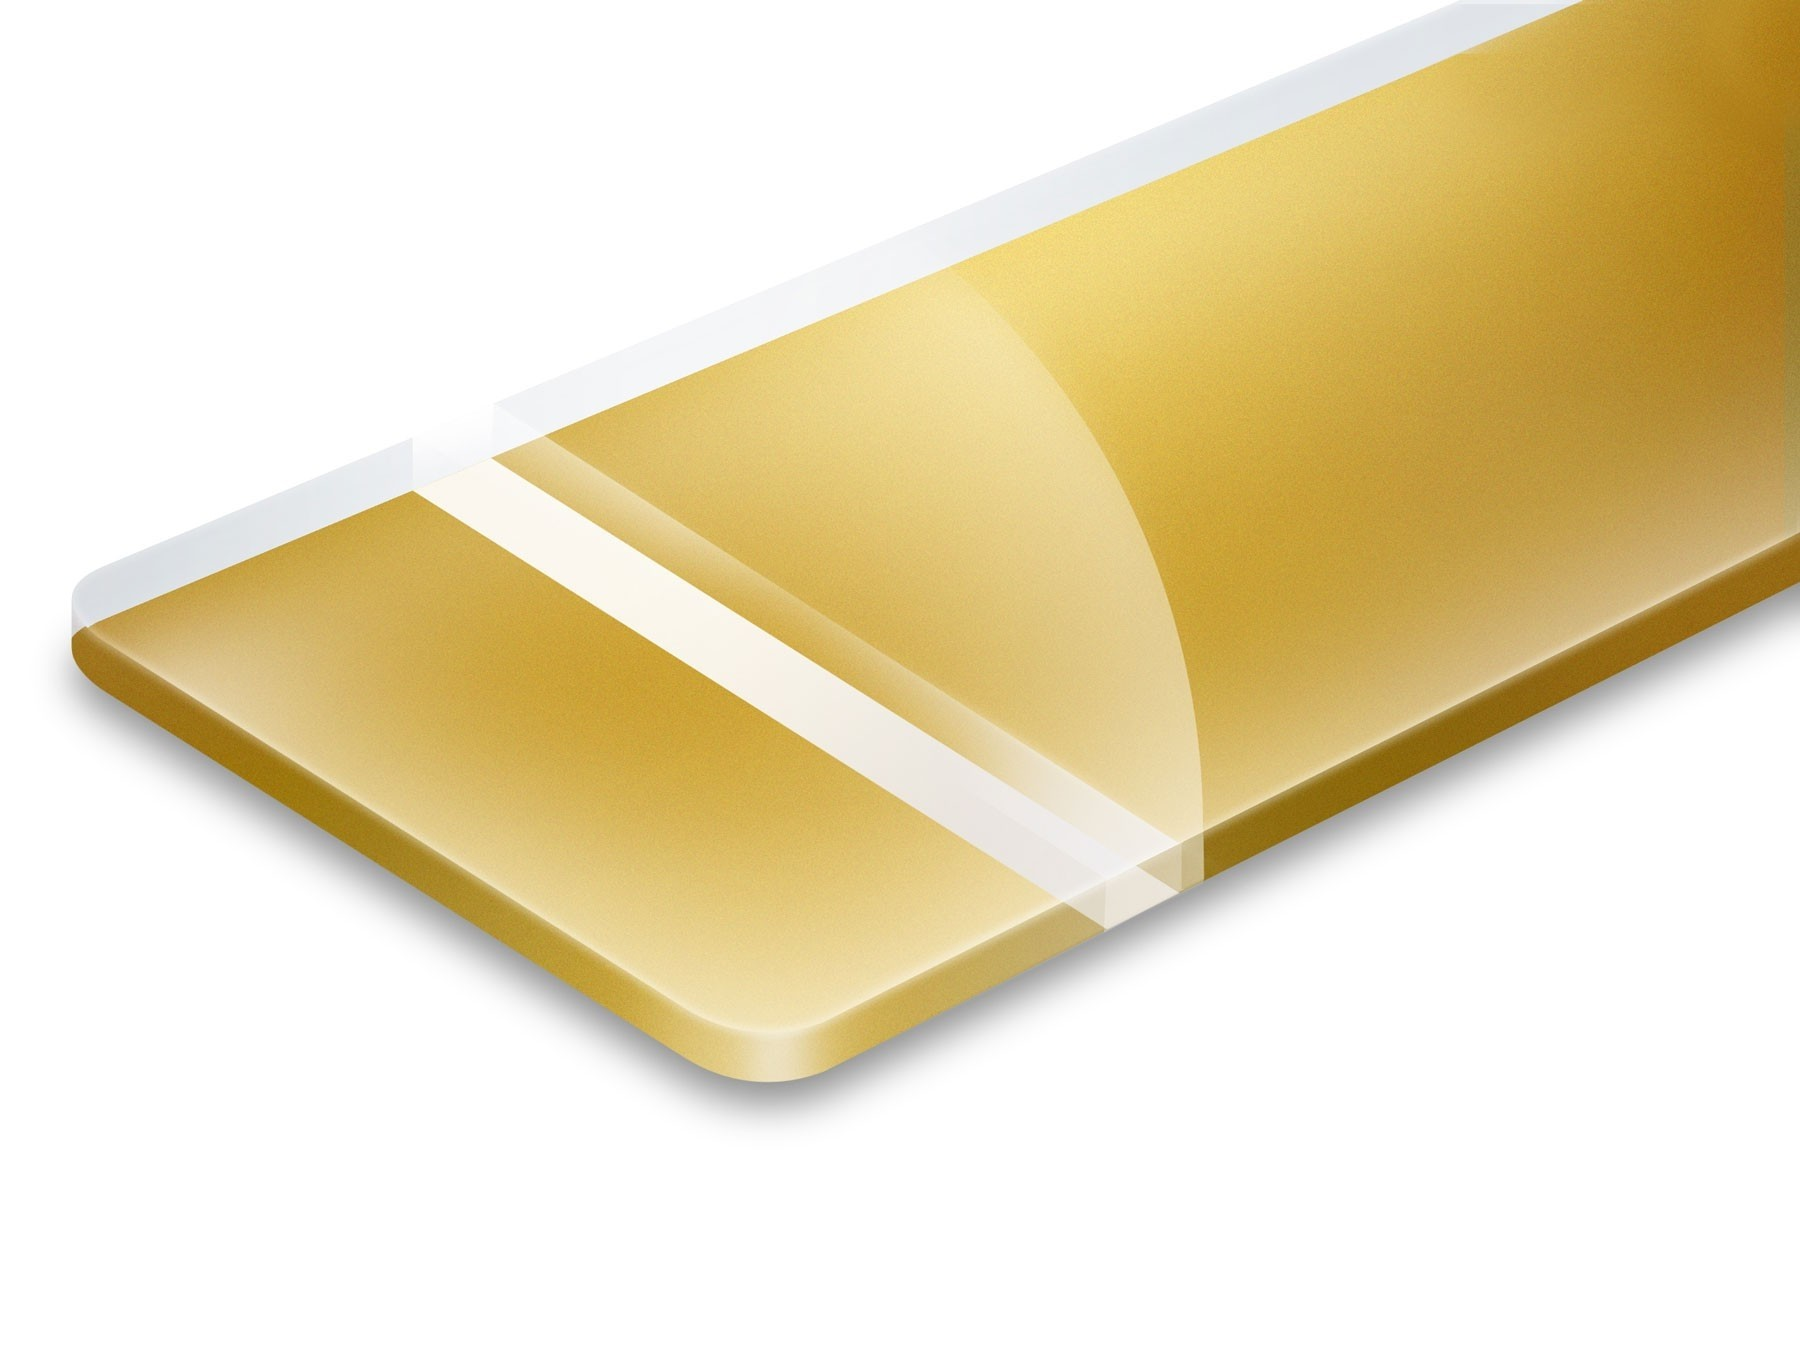 TroLase Reverse, Gloss/Gold, 2ply, 1.6 mm